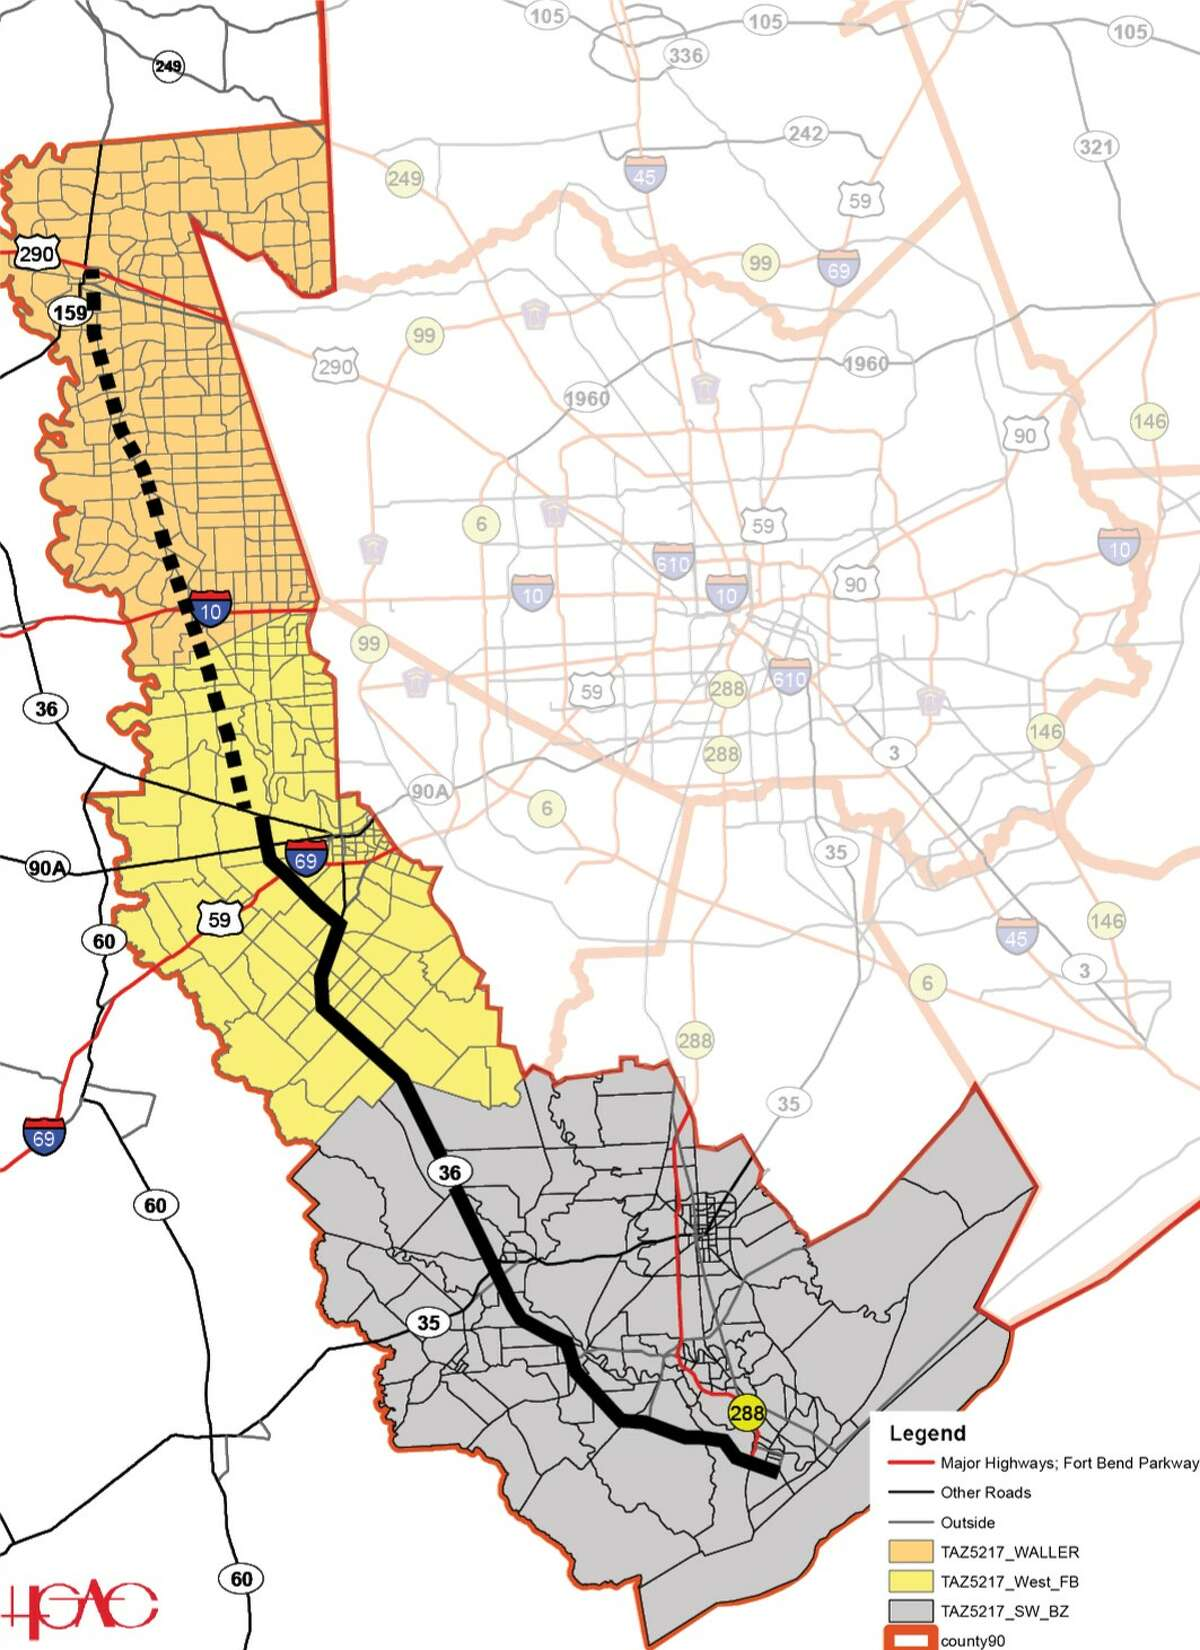 Officials in Fort Bend and Waller counties are pursuing a planned highway, deemed 36A, from Rosenberg to Hempstead.